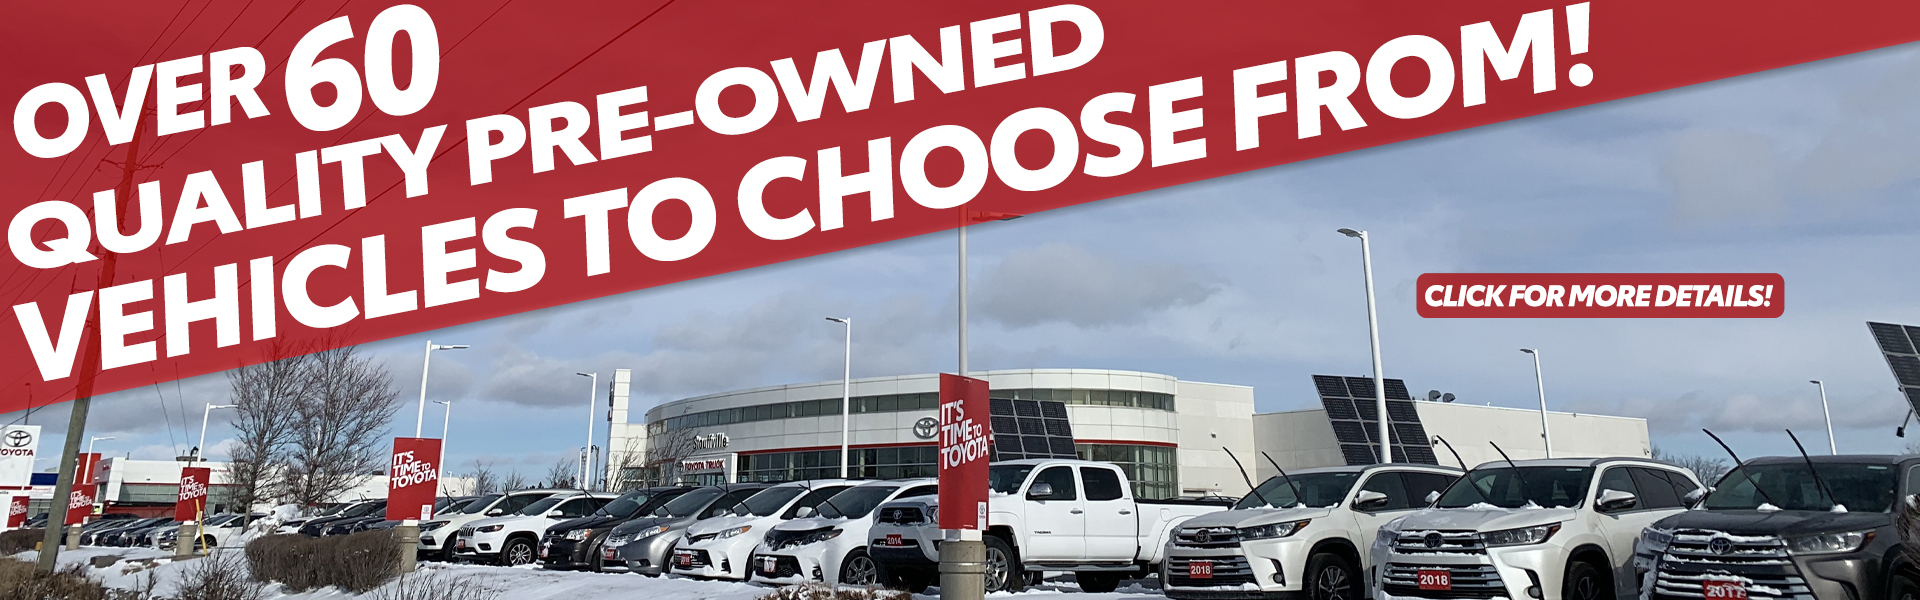 Over 60 Quality Pre-Owned Vehicle In-Stock